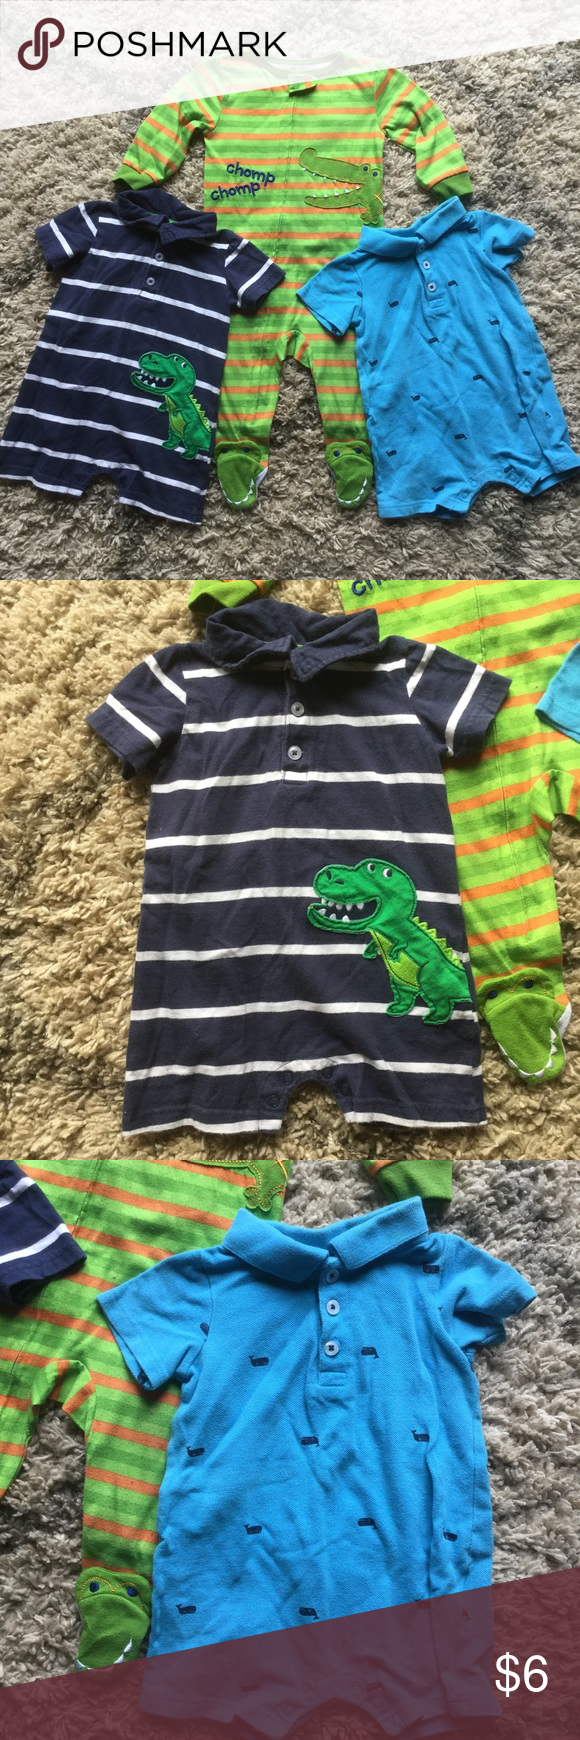 3 pieces, 12 month size Blue and white striped collared shorts one piece with snaps at the bottom, buttons at the top by Carter's. Blue collared shorts one piece with whale's, snaps at bottom, buttons at top by Carter's.  Green and orange striped footie one piece with zipper by Babies r Us. Bottoms Jumpsuits & Rompers